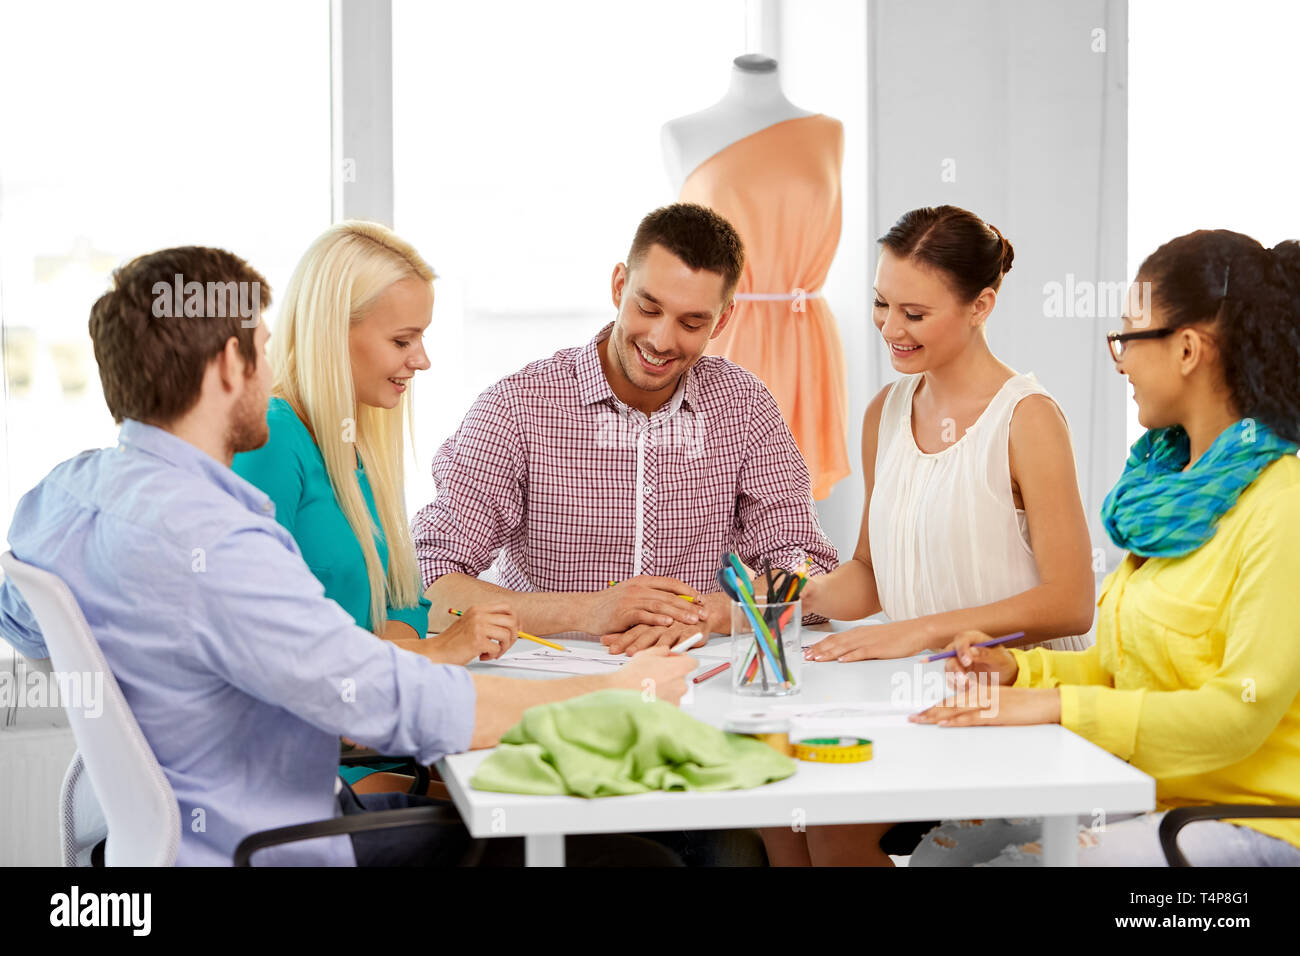 Fashion Design Tailoring And People Concept Team Of Fashion Designers With Sketch Working At Office Stock Photo Alamy